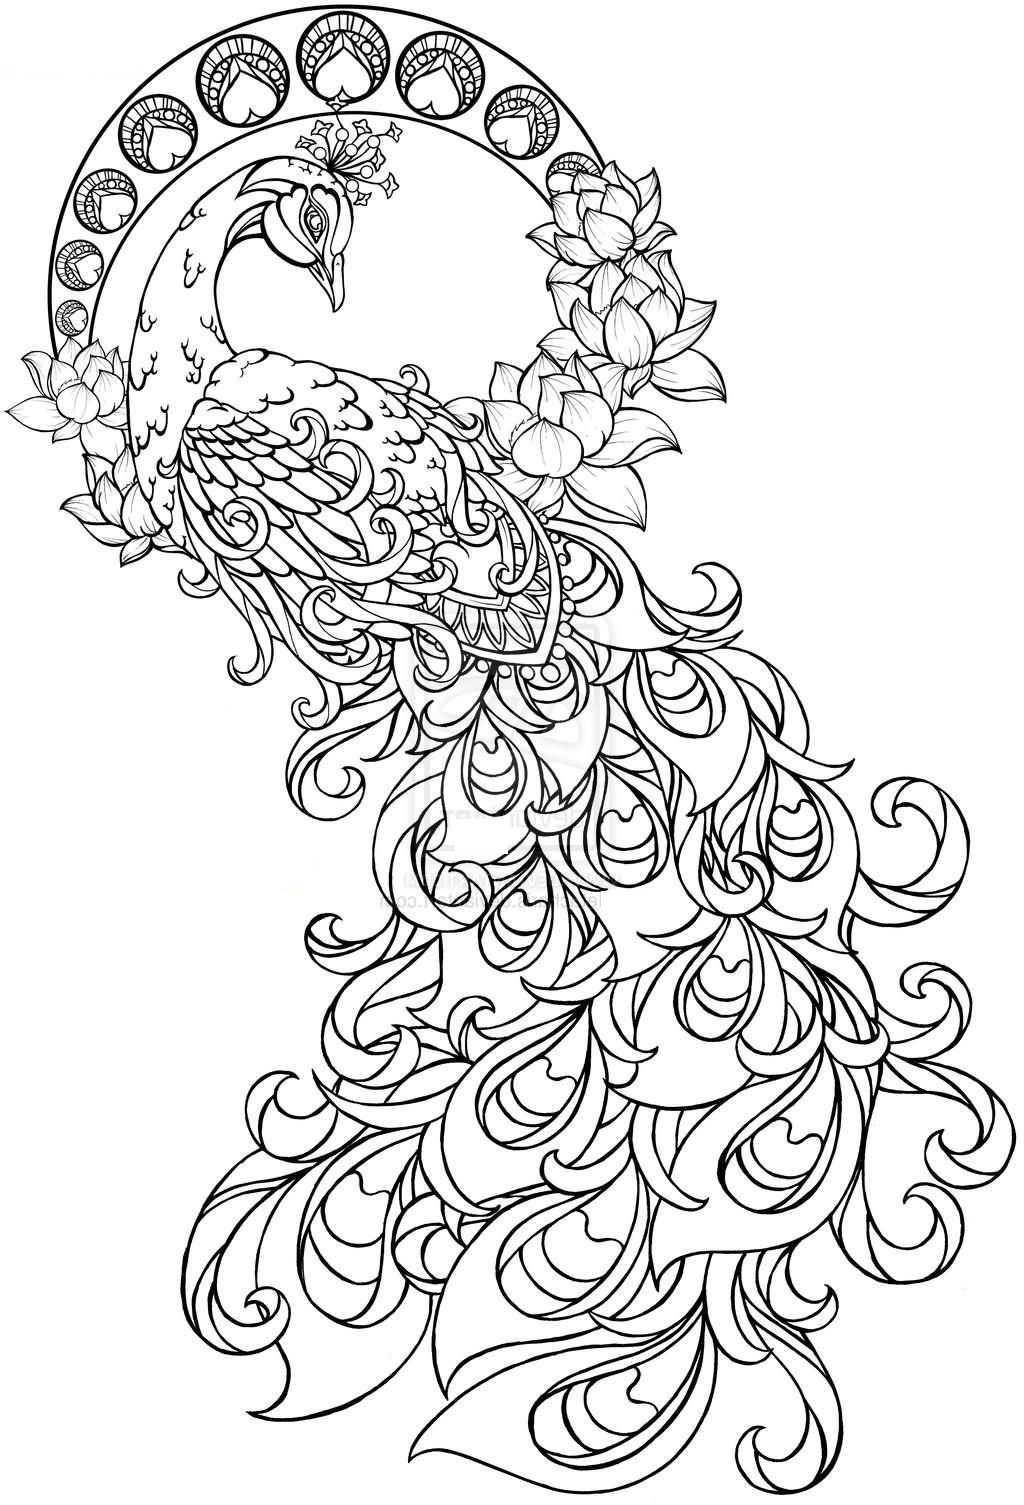 This Beautiful Large Peacock Paisley Pattern Tattoo Design